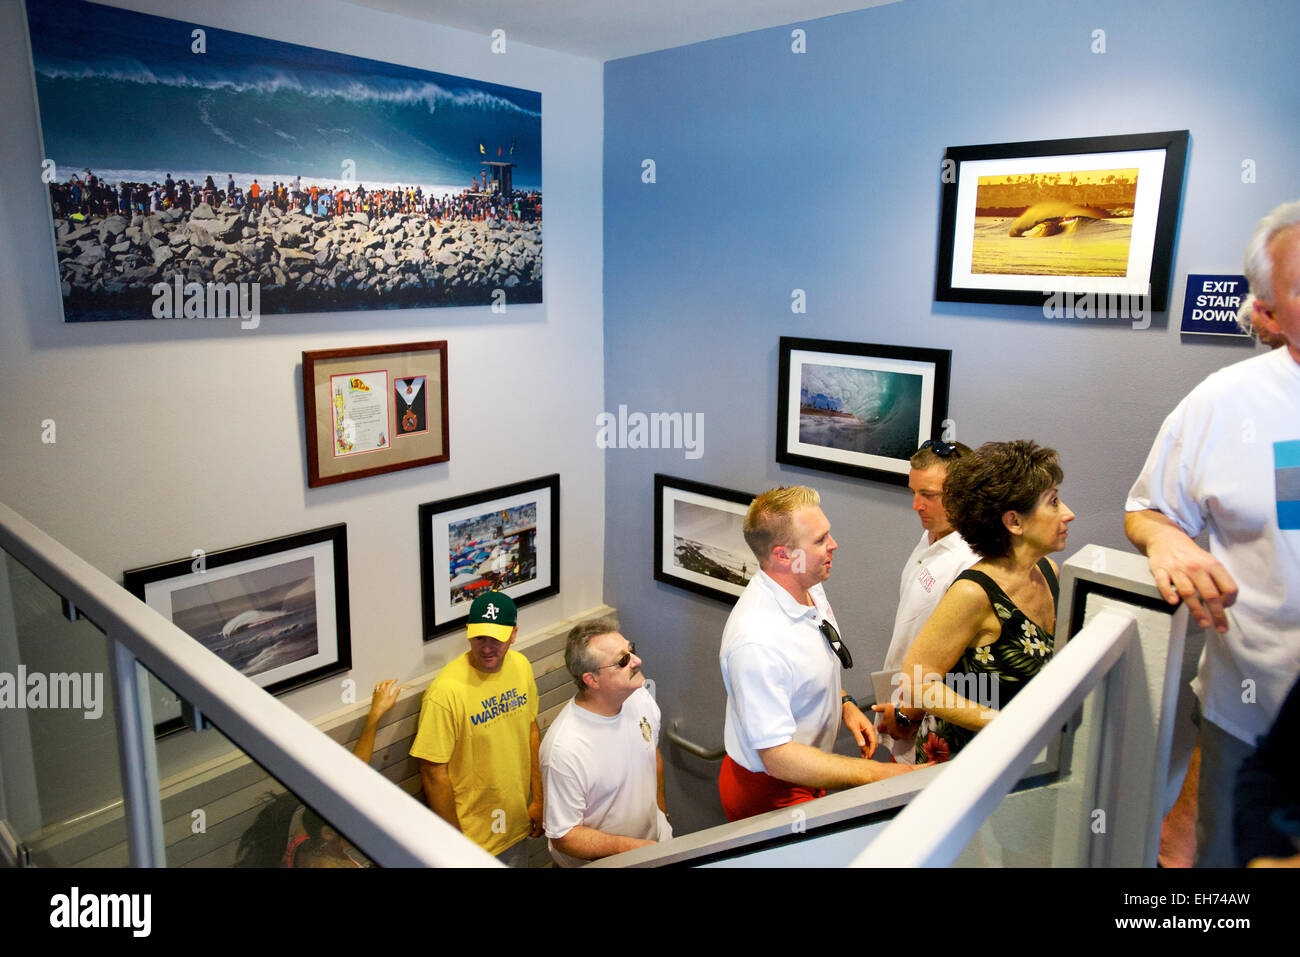 Newport Beach, California, USA. 8th March, 2015. The newly renovated lifeguard headquarters building features state - Stock Image